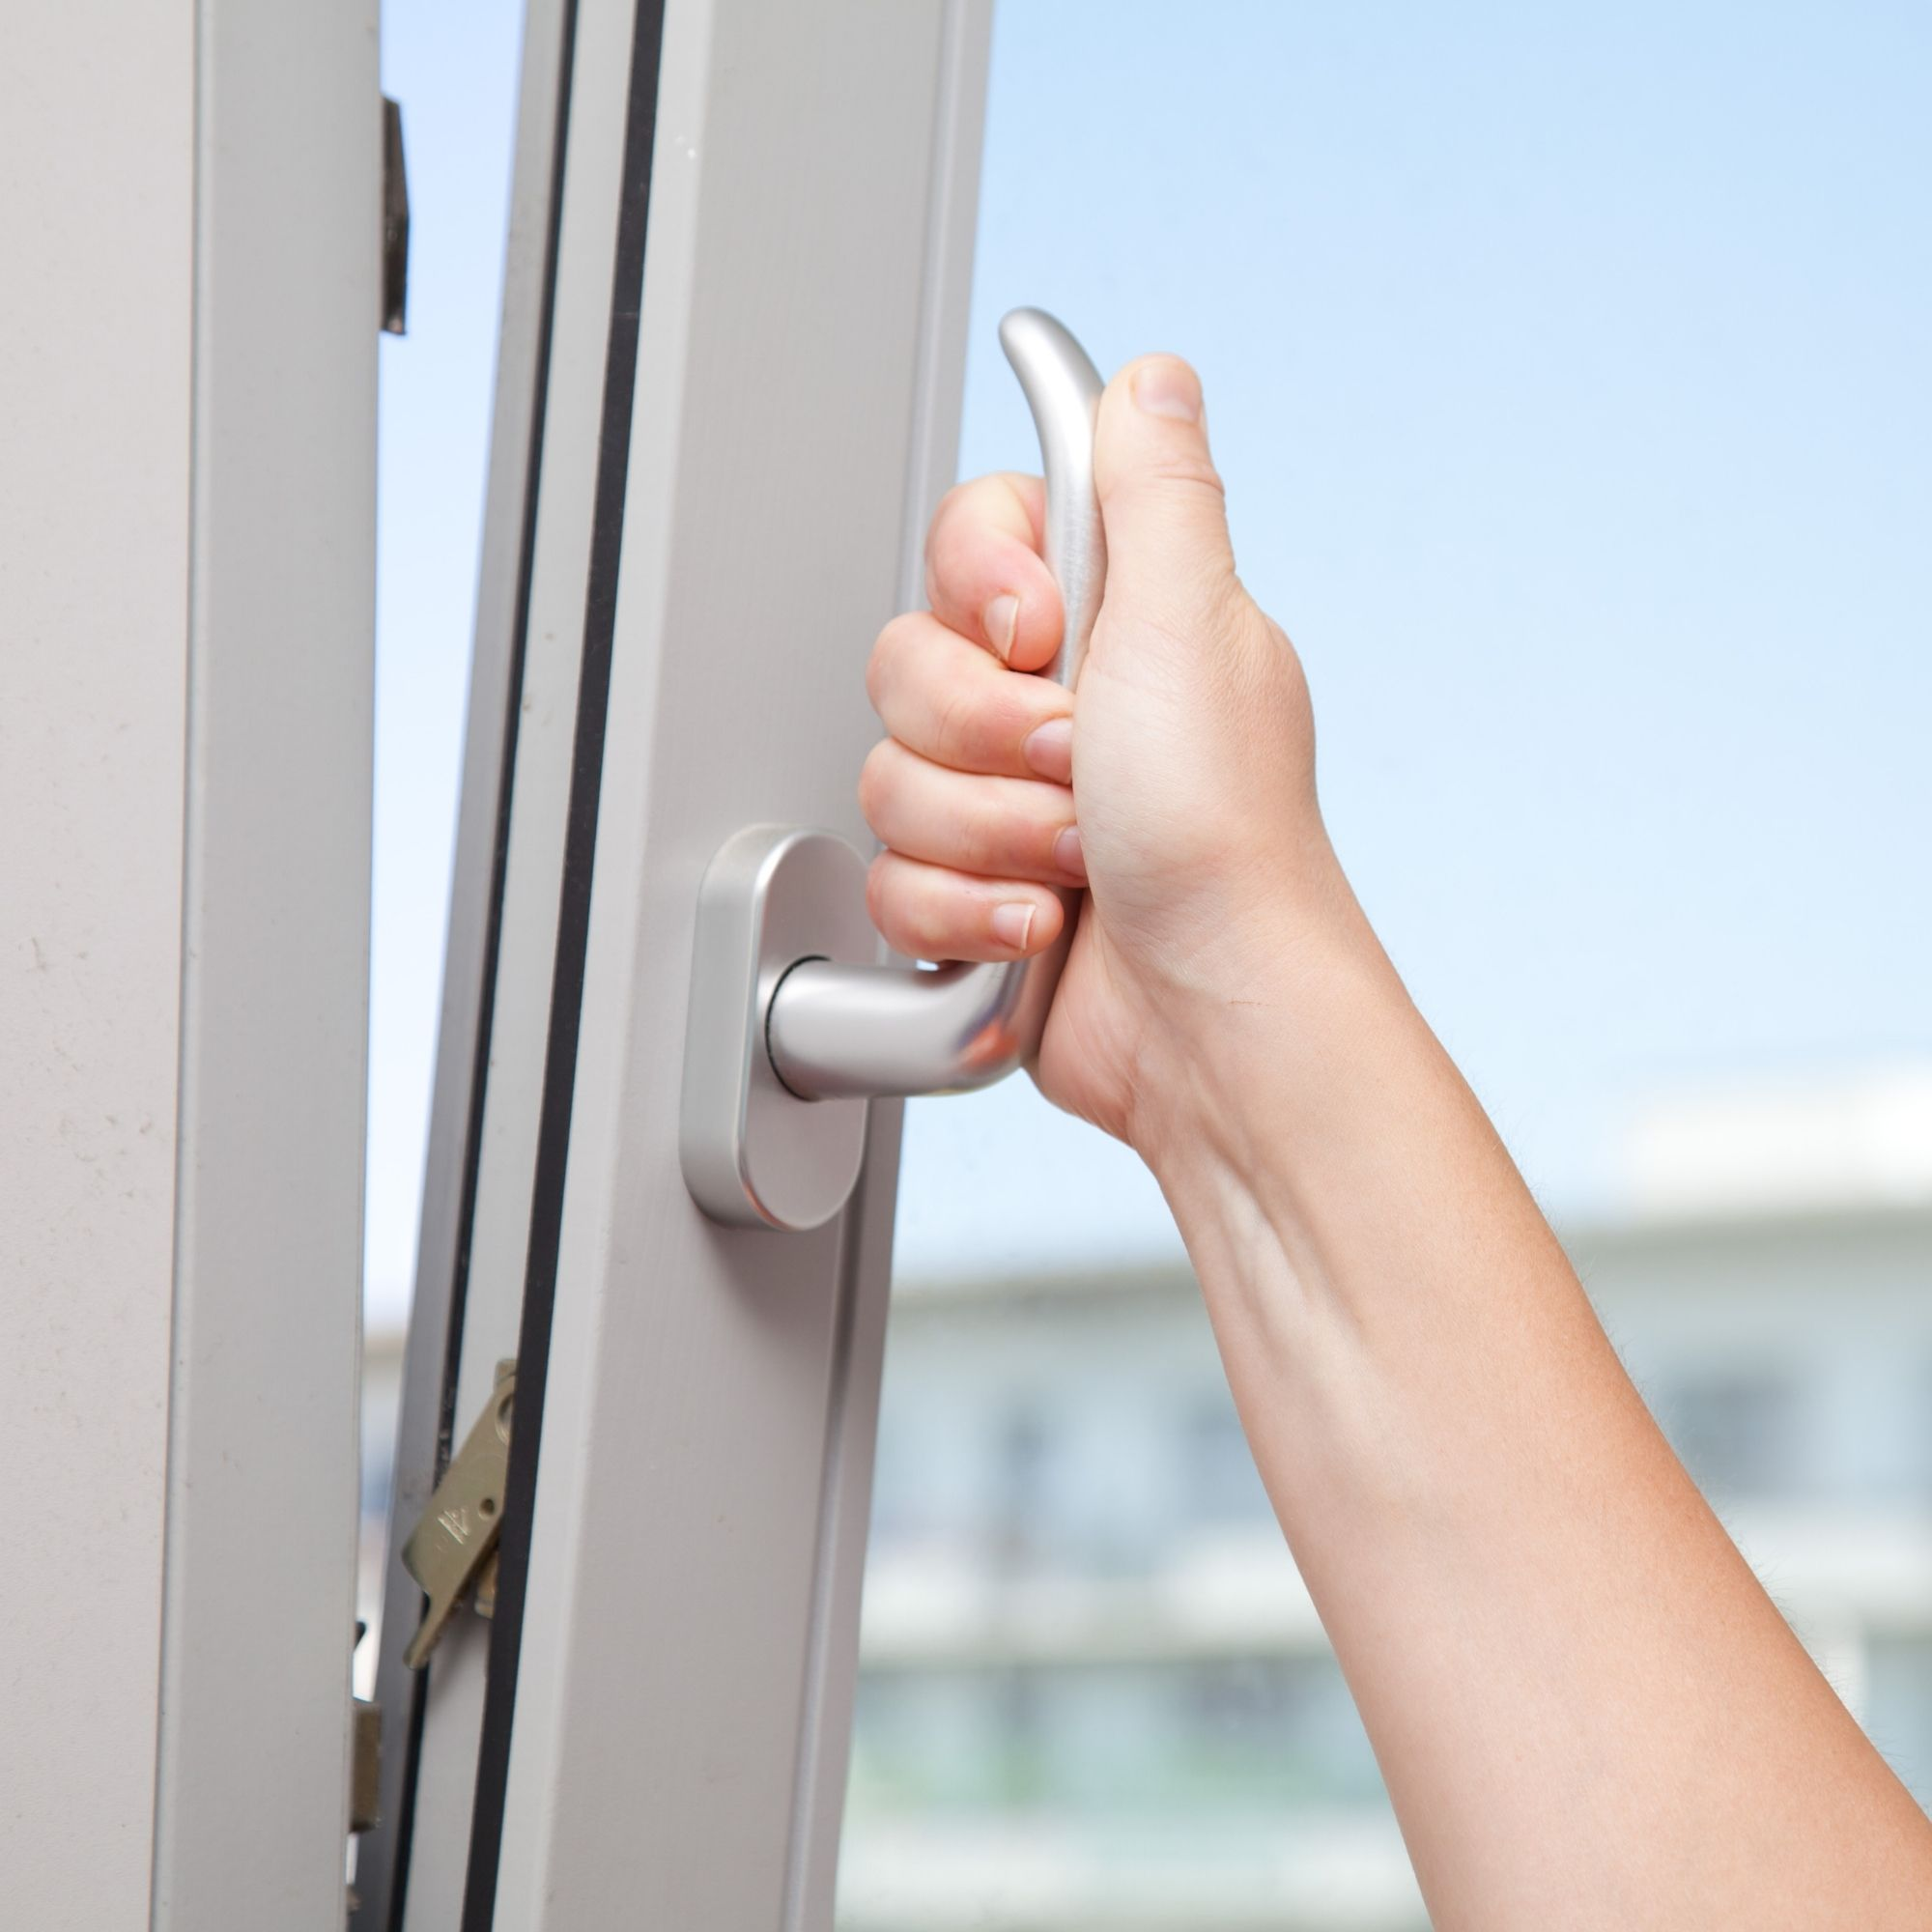 PVC Windows and doors offer the best sound proofing and insulation features